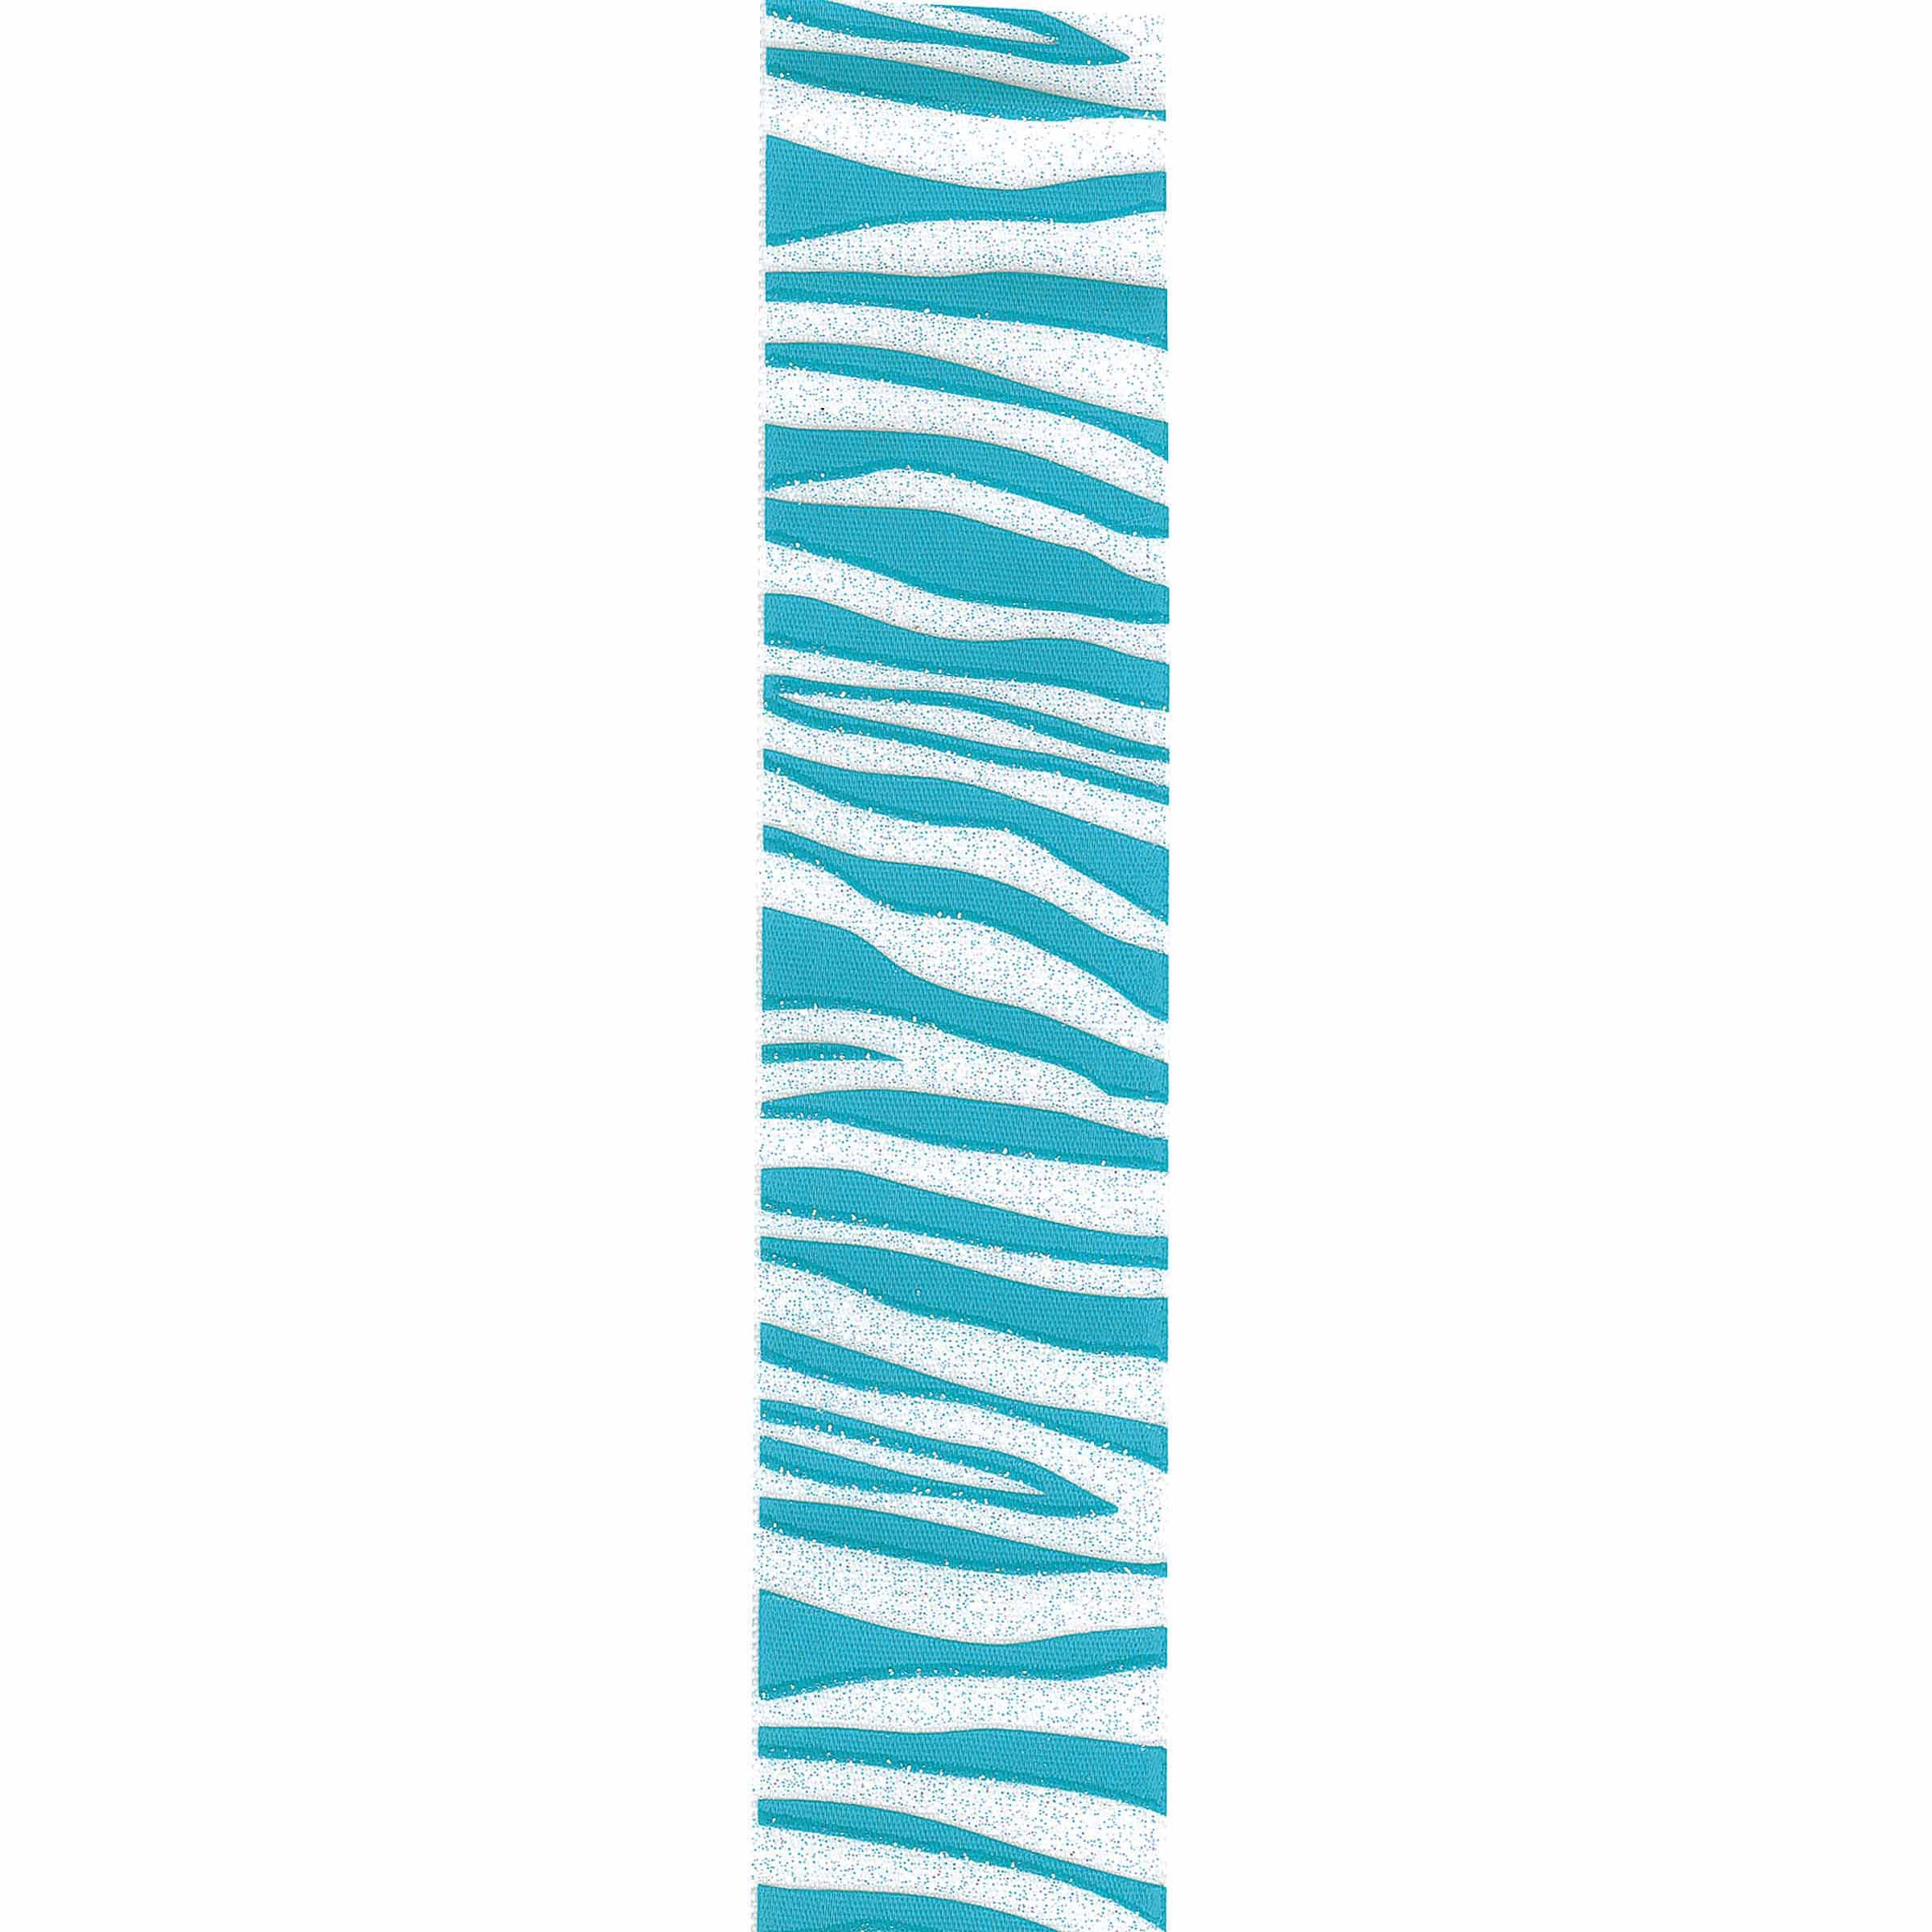 Offray Zebra Crystal Craft Ribbon, 3/8-Inch x 12-Feet, Turquoise